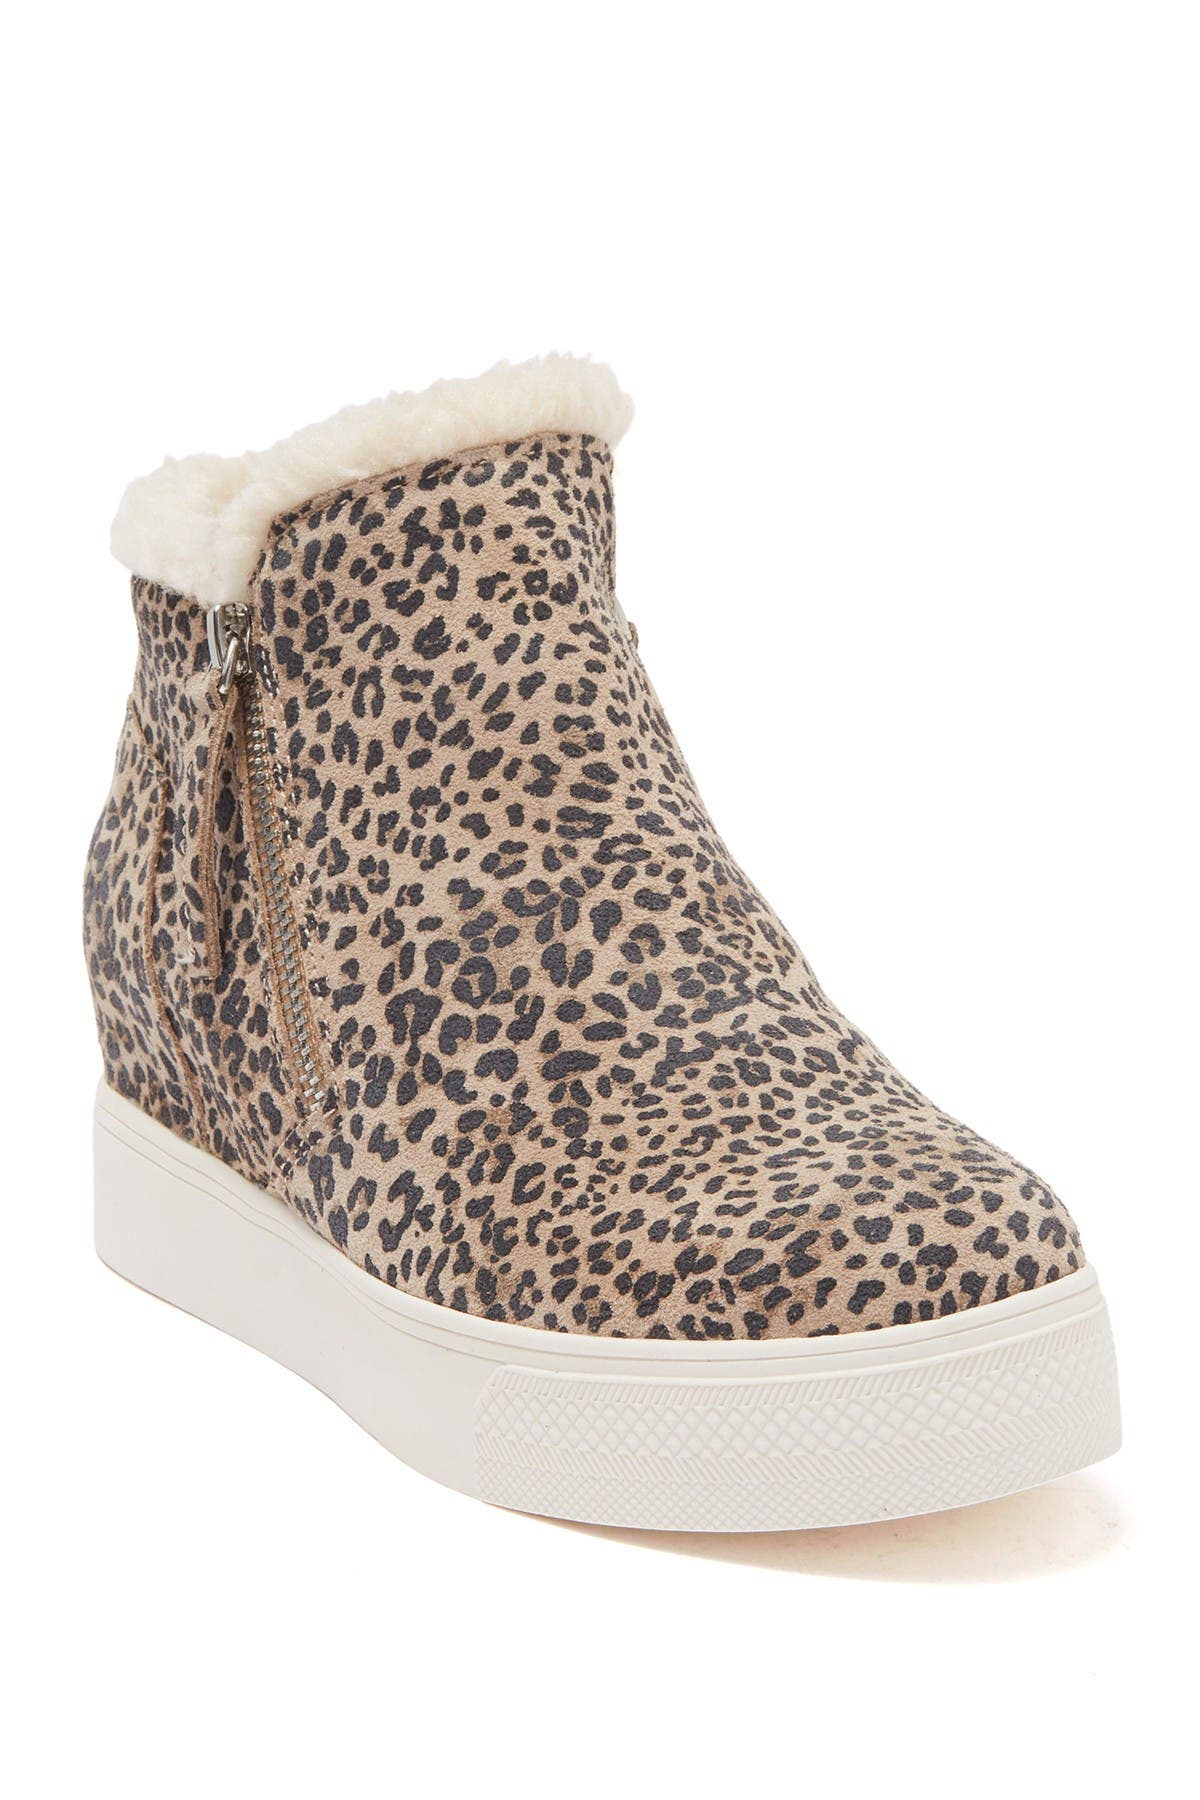 Image of Dolce Vita Wolfe Faux Shearling Wedge Sneaker